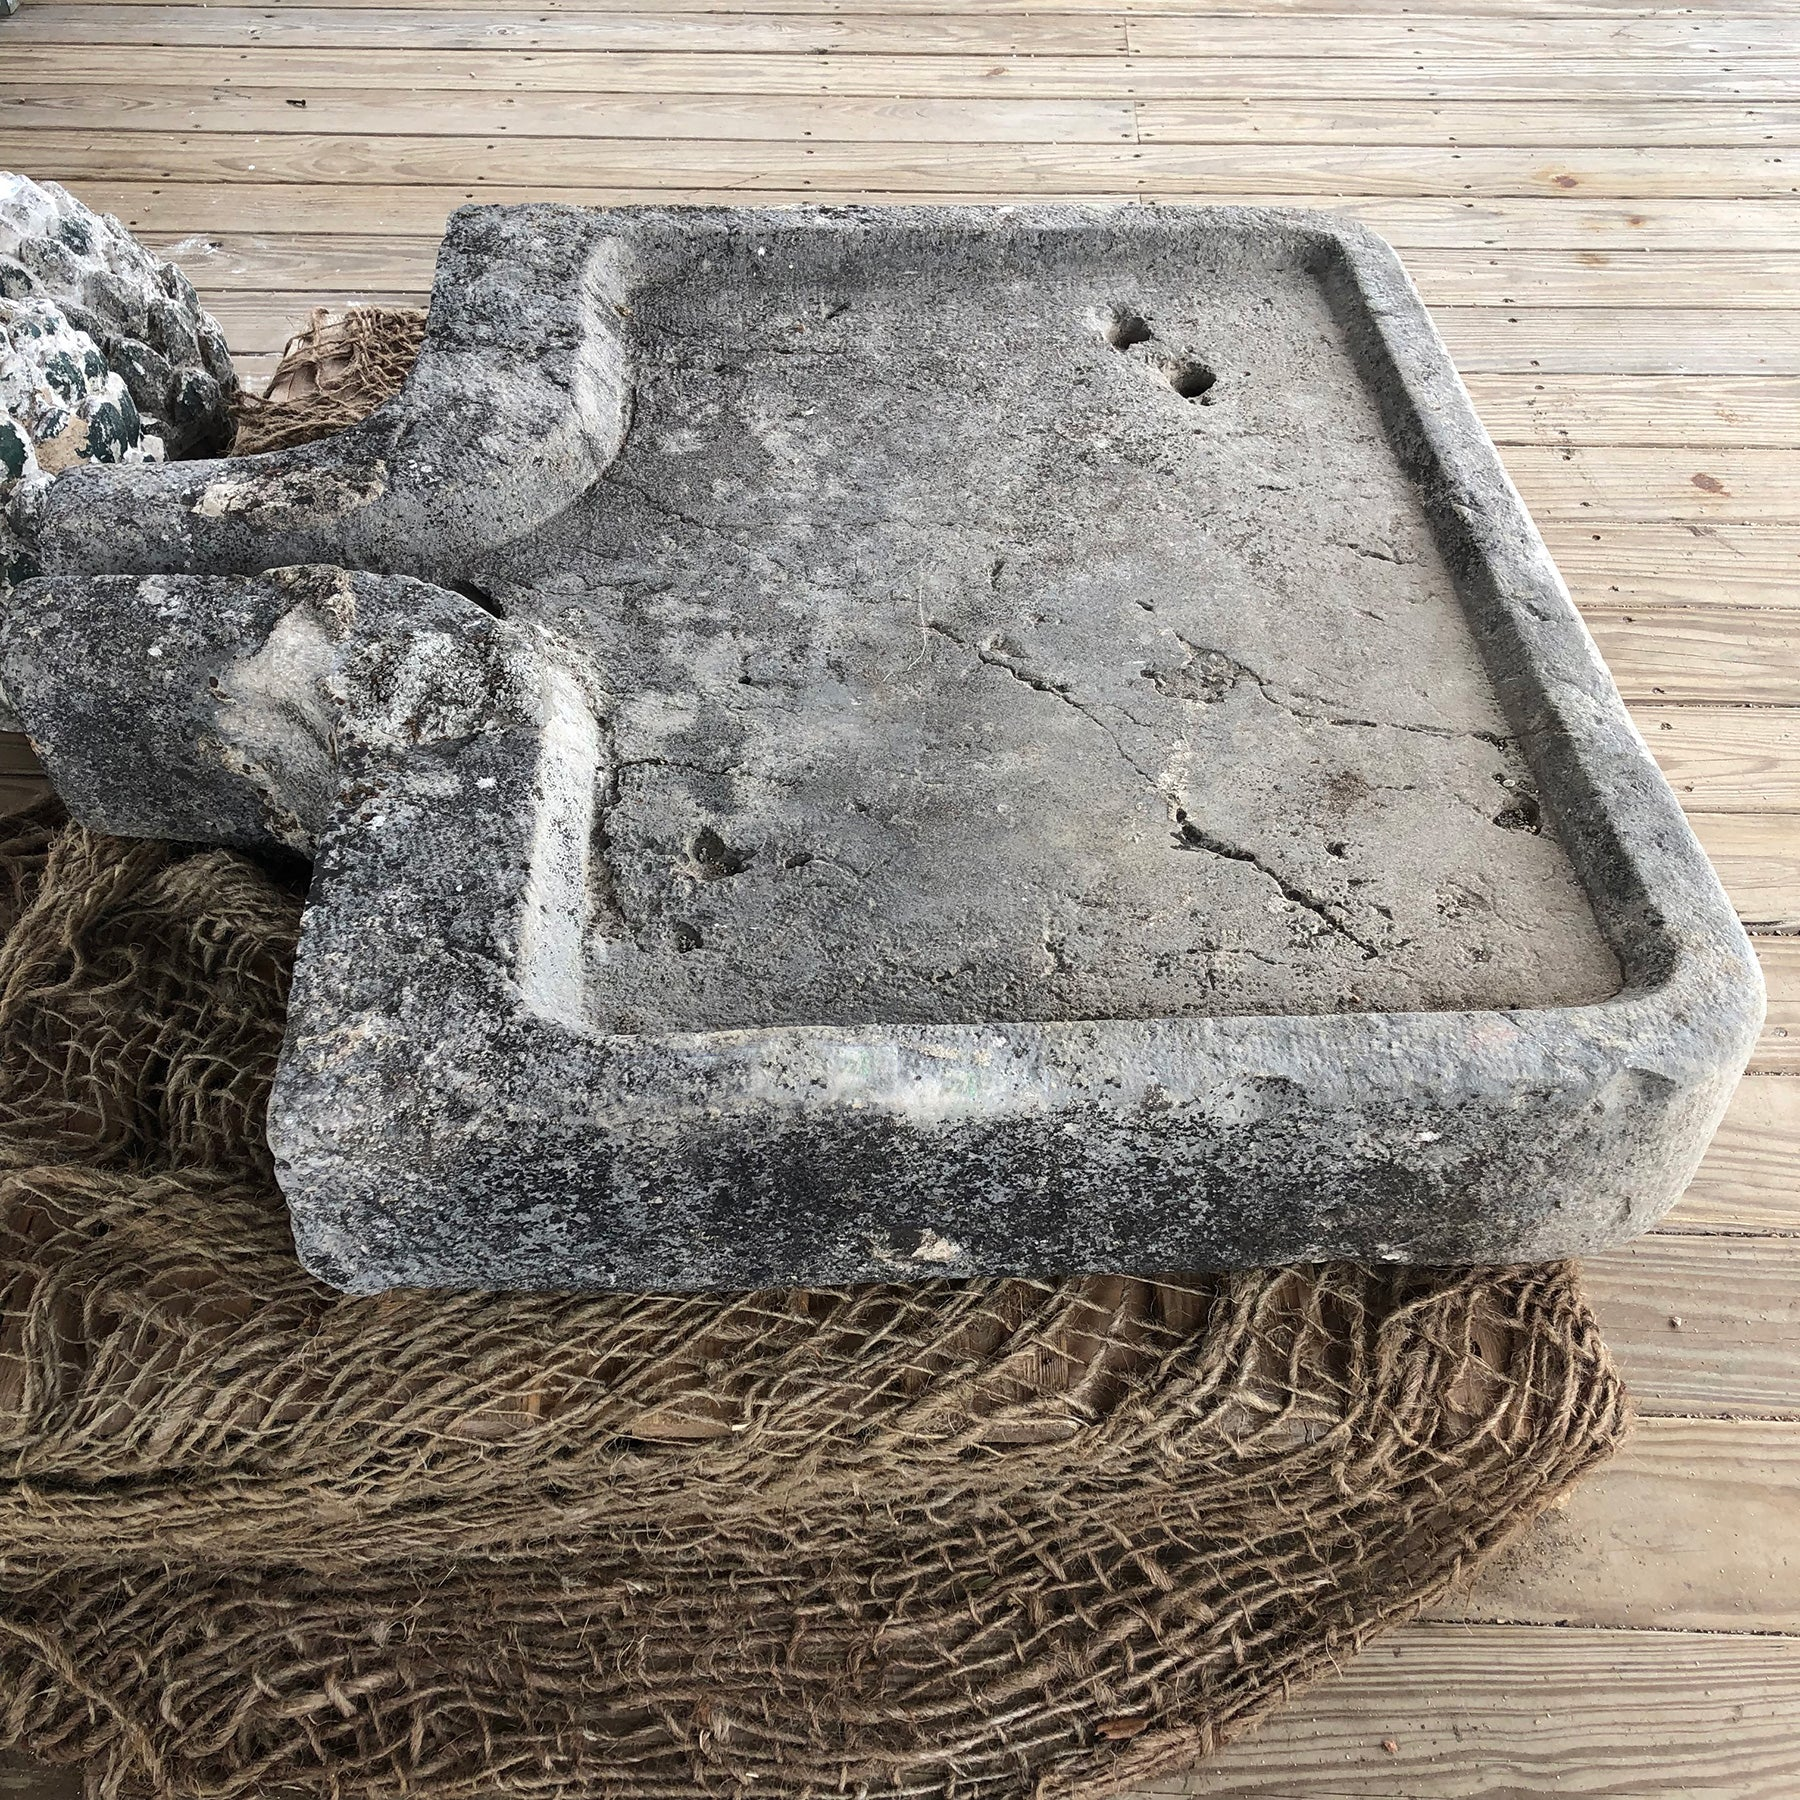 Sink in Limestone from Villebois, France